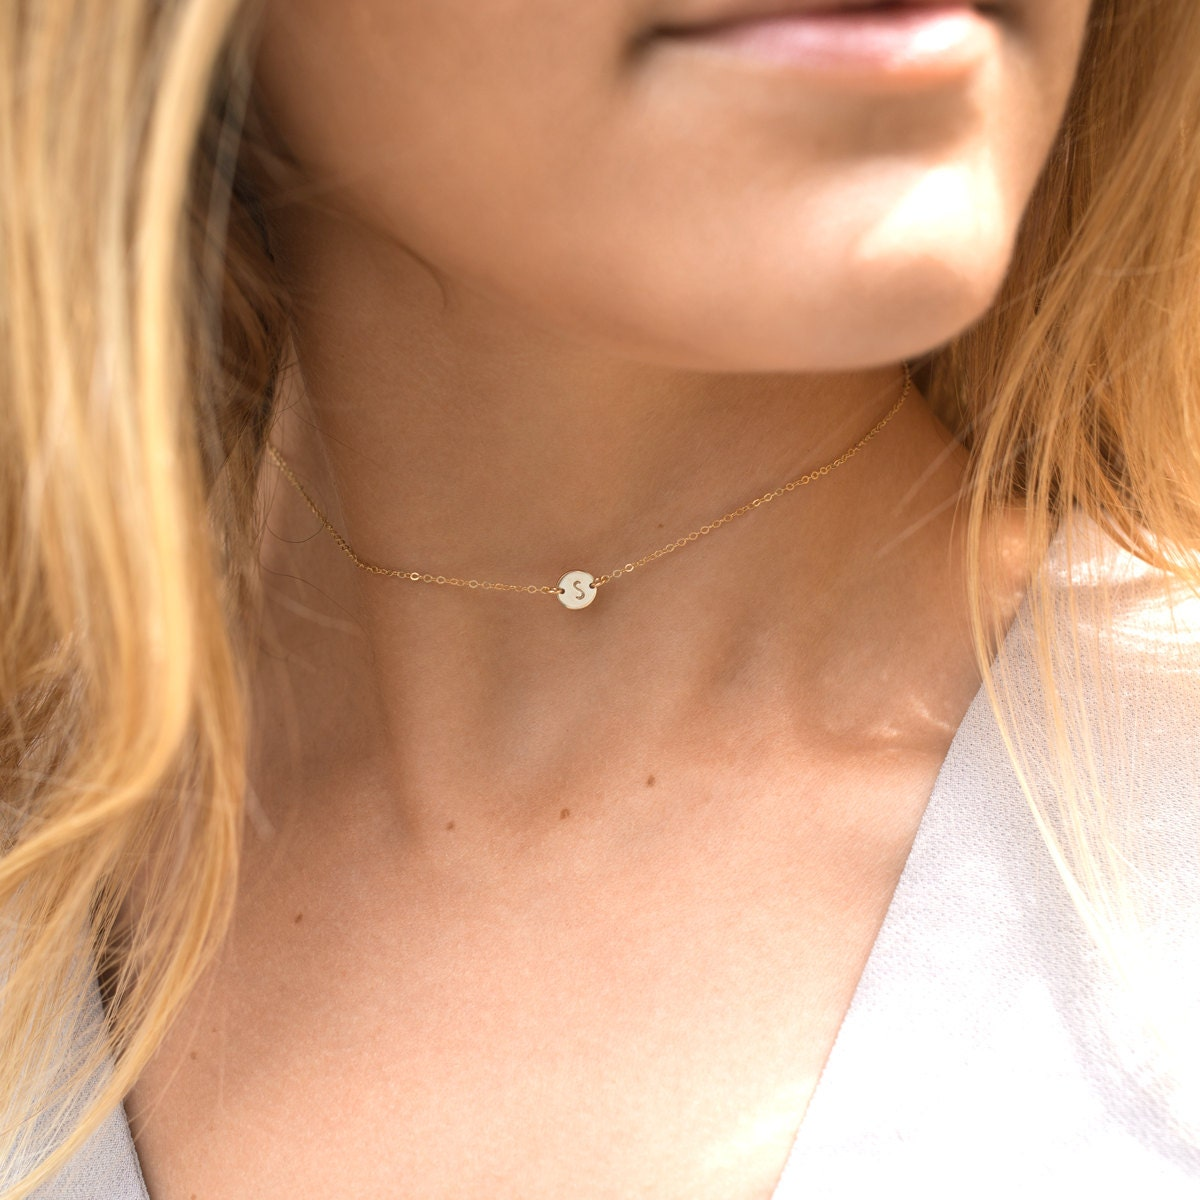 Initial Choker Necklace Dainty Personalized Or By